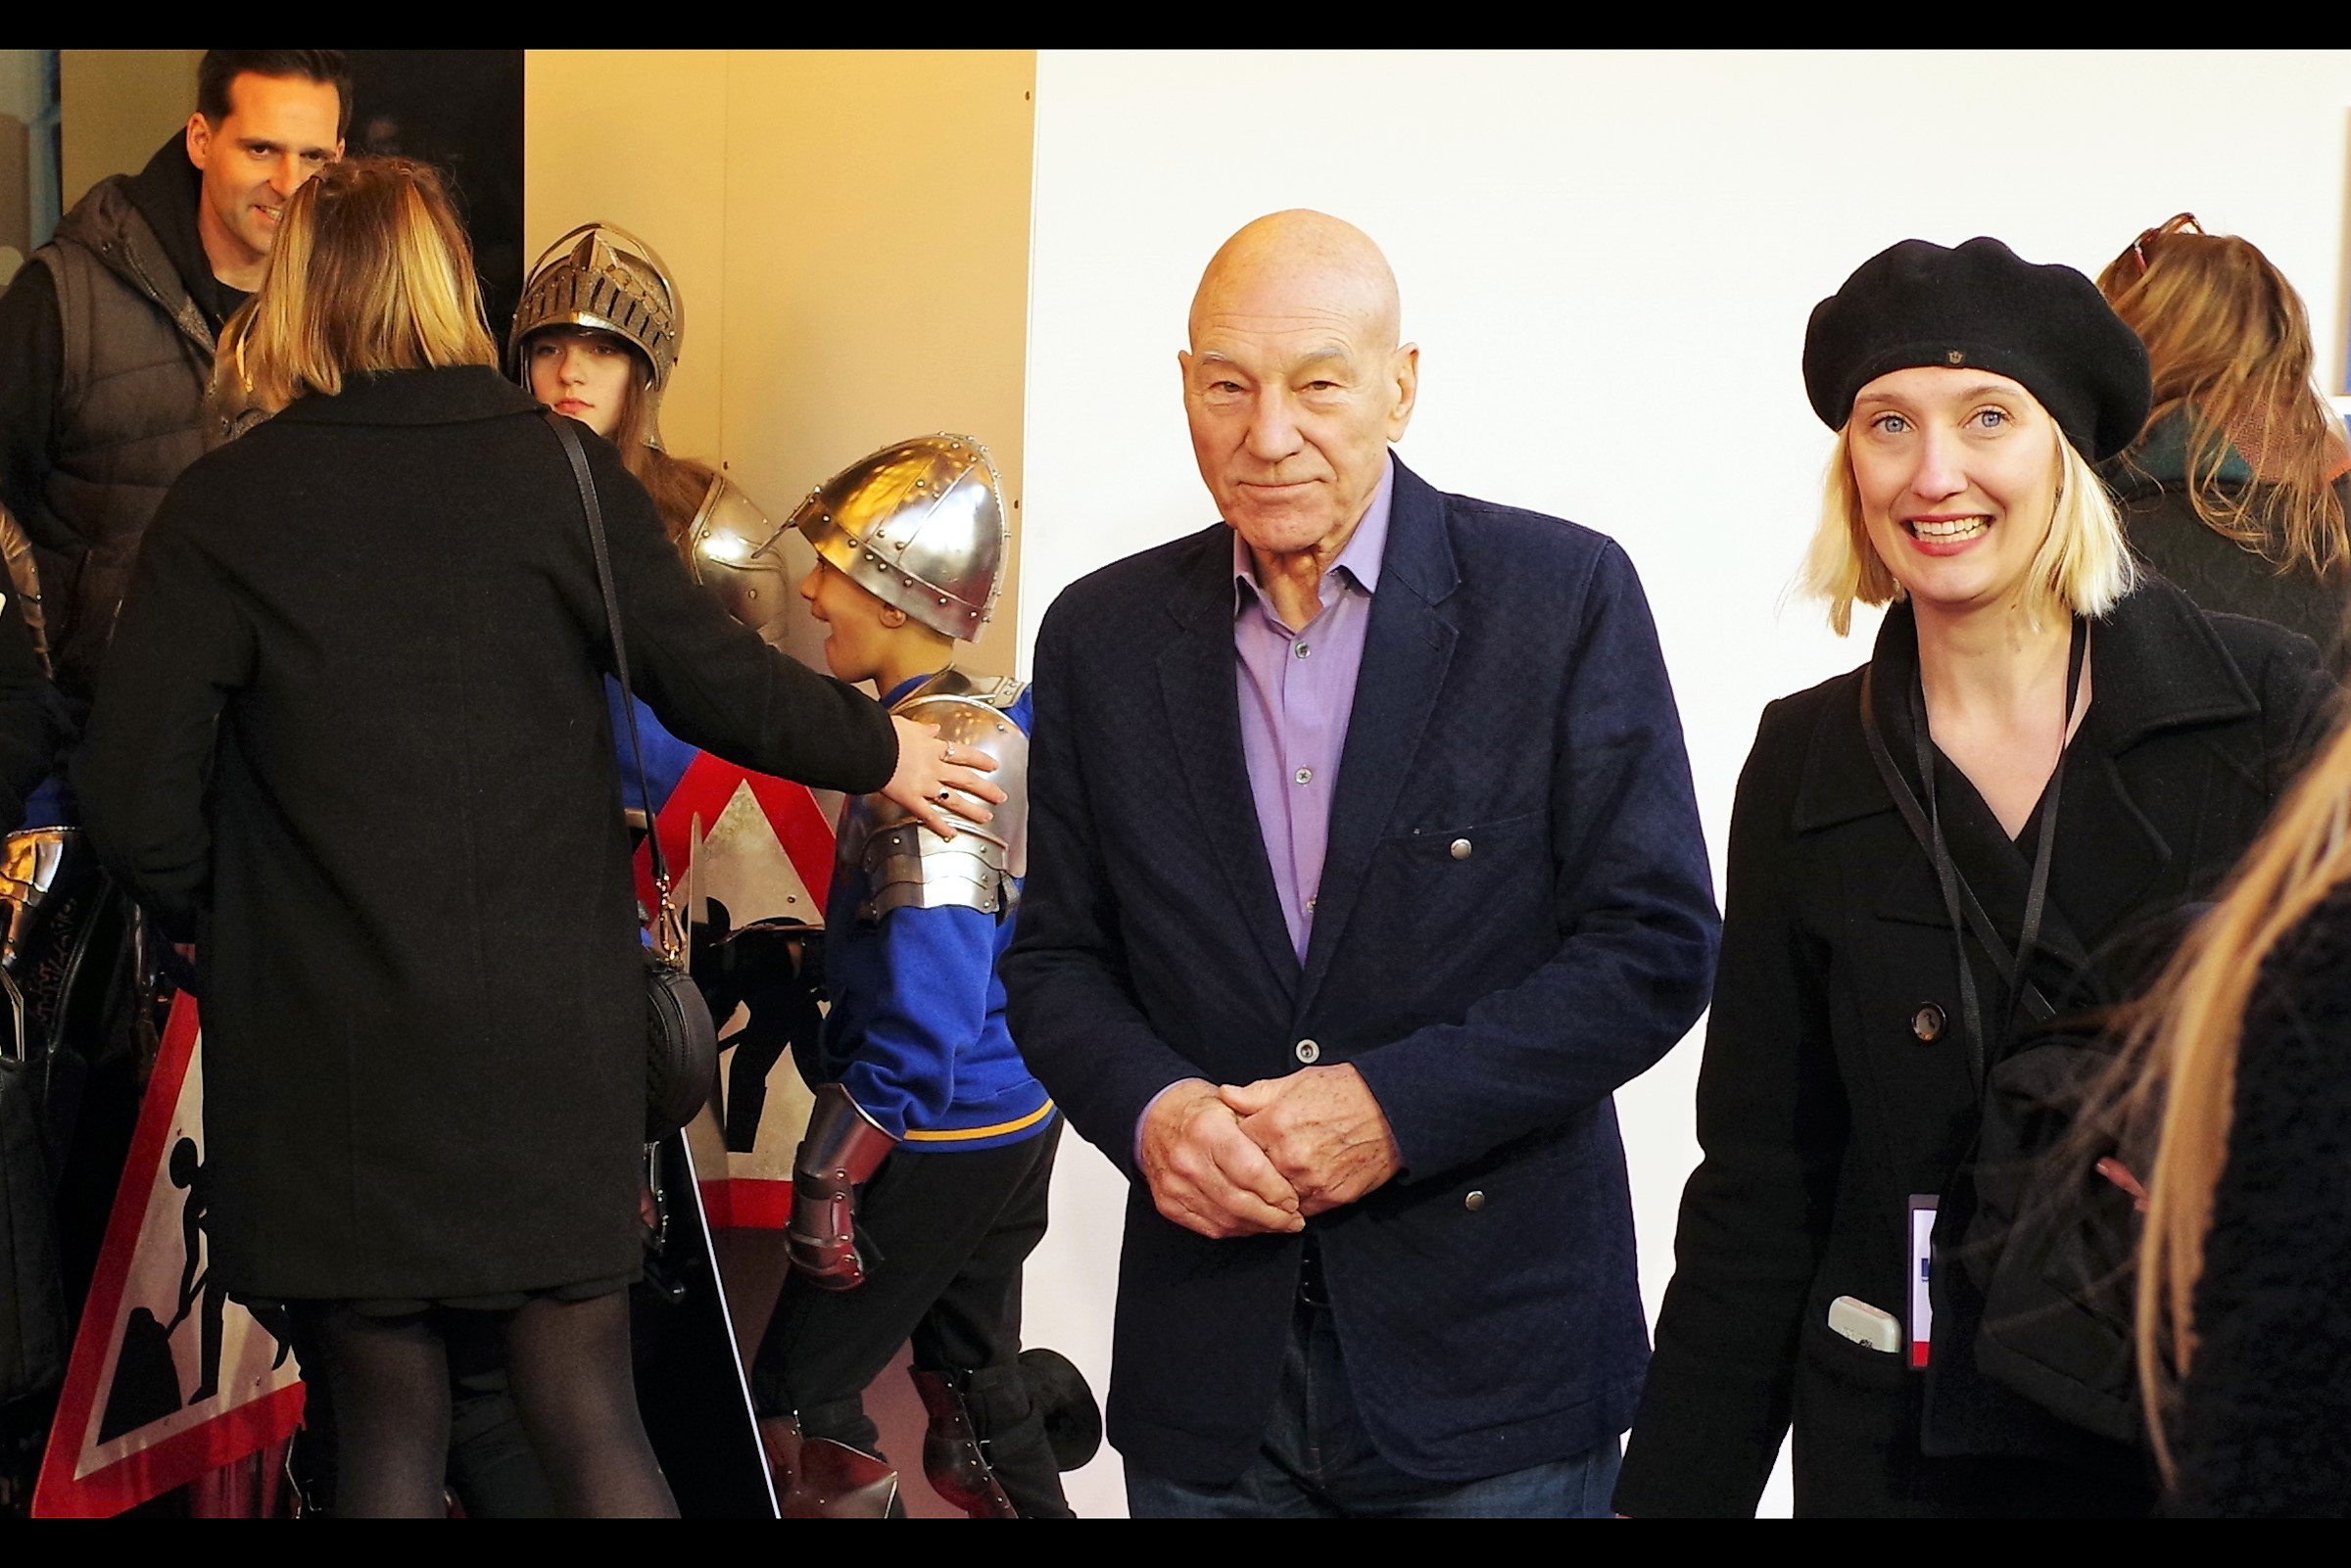 It's Patrick Stewart… and the matter of the five dollars he still owes hangs uncomfortably between us.